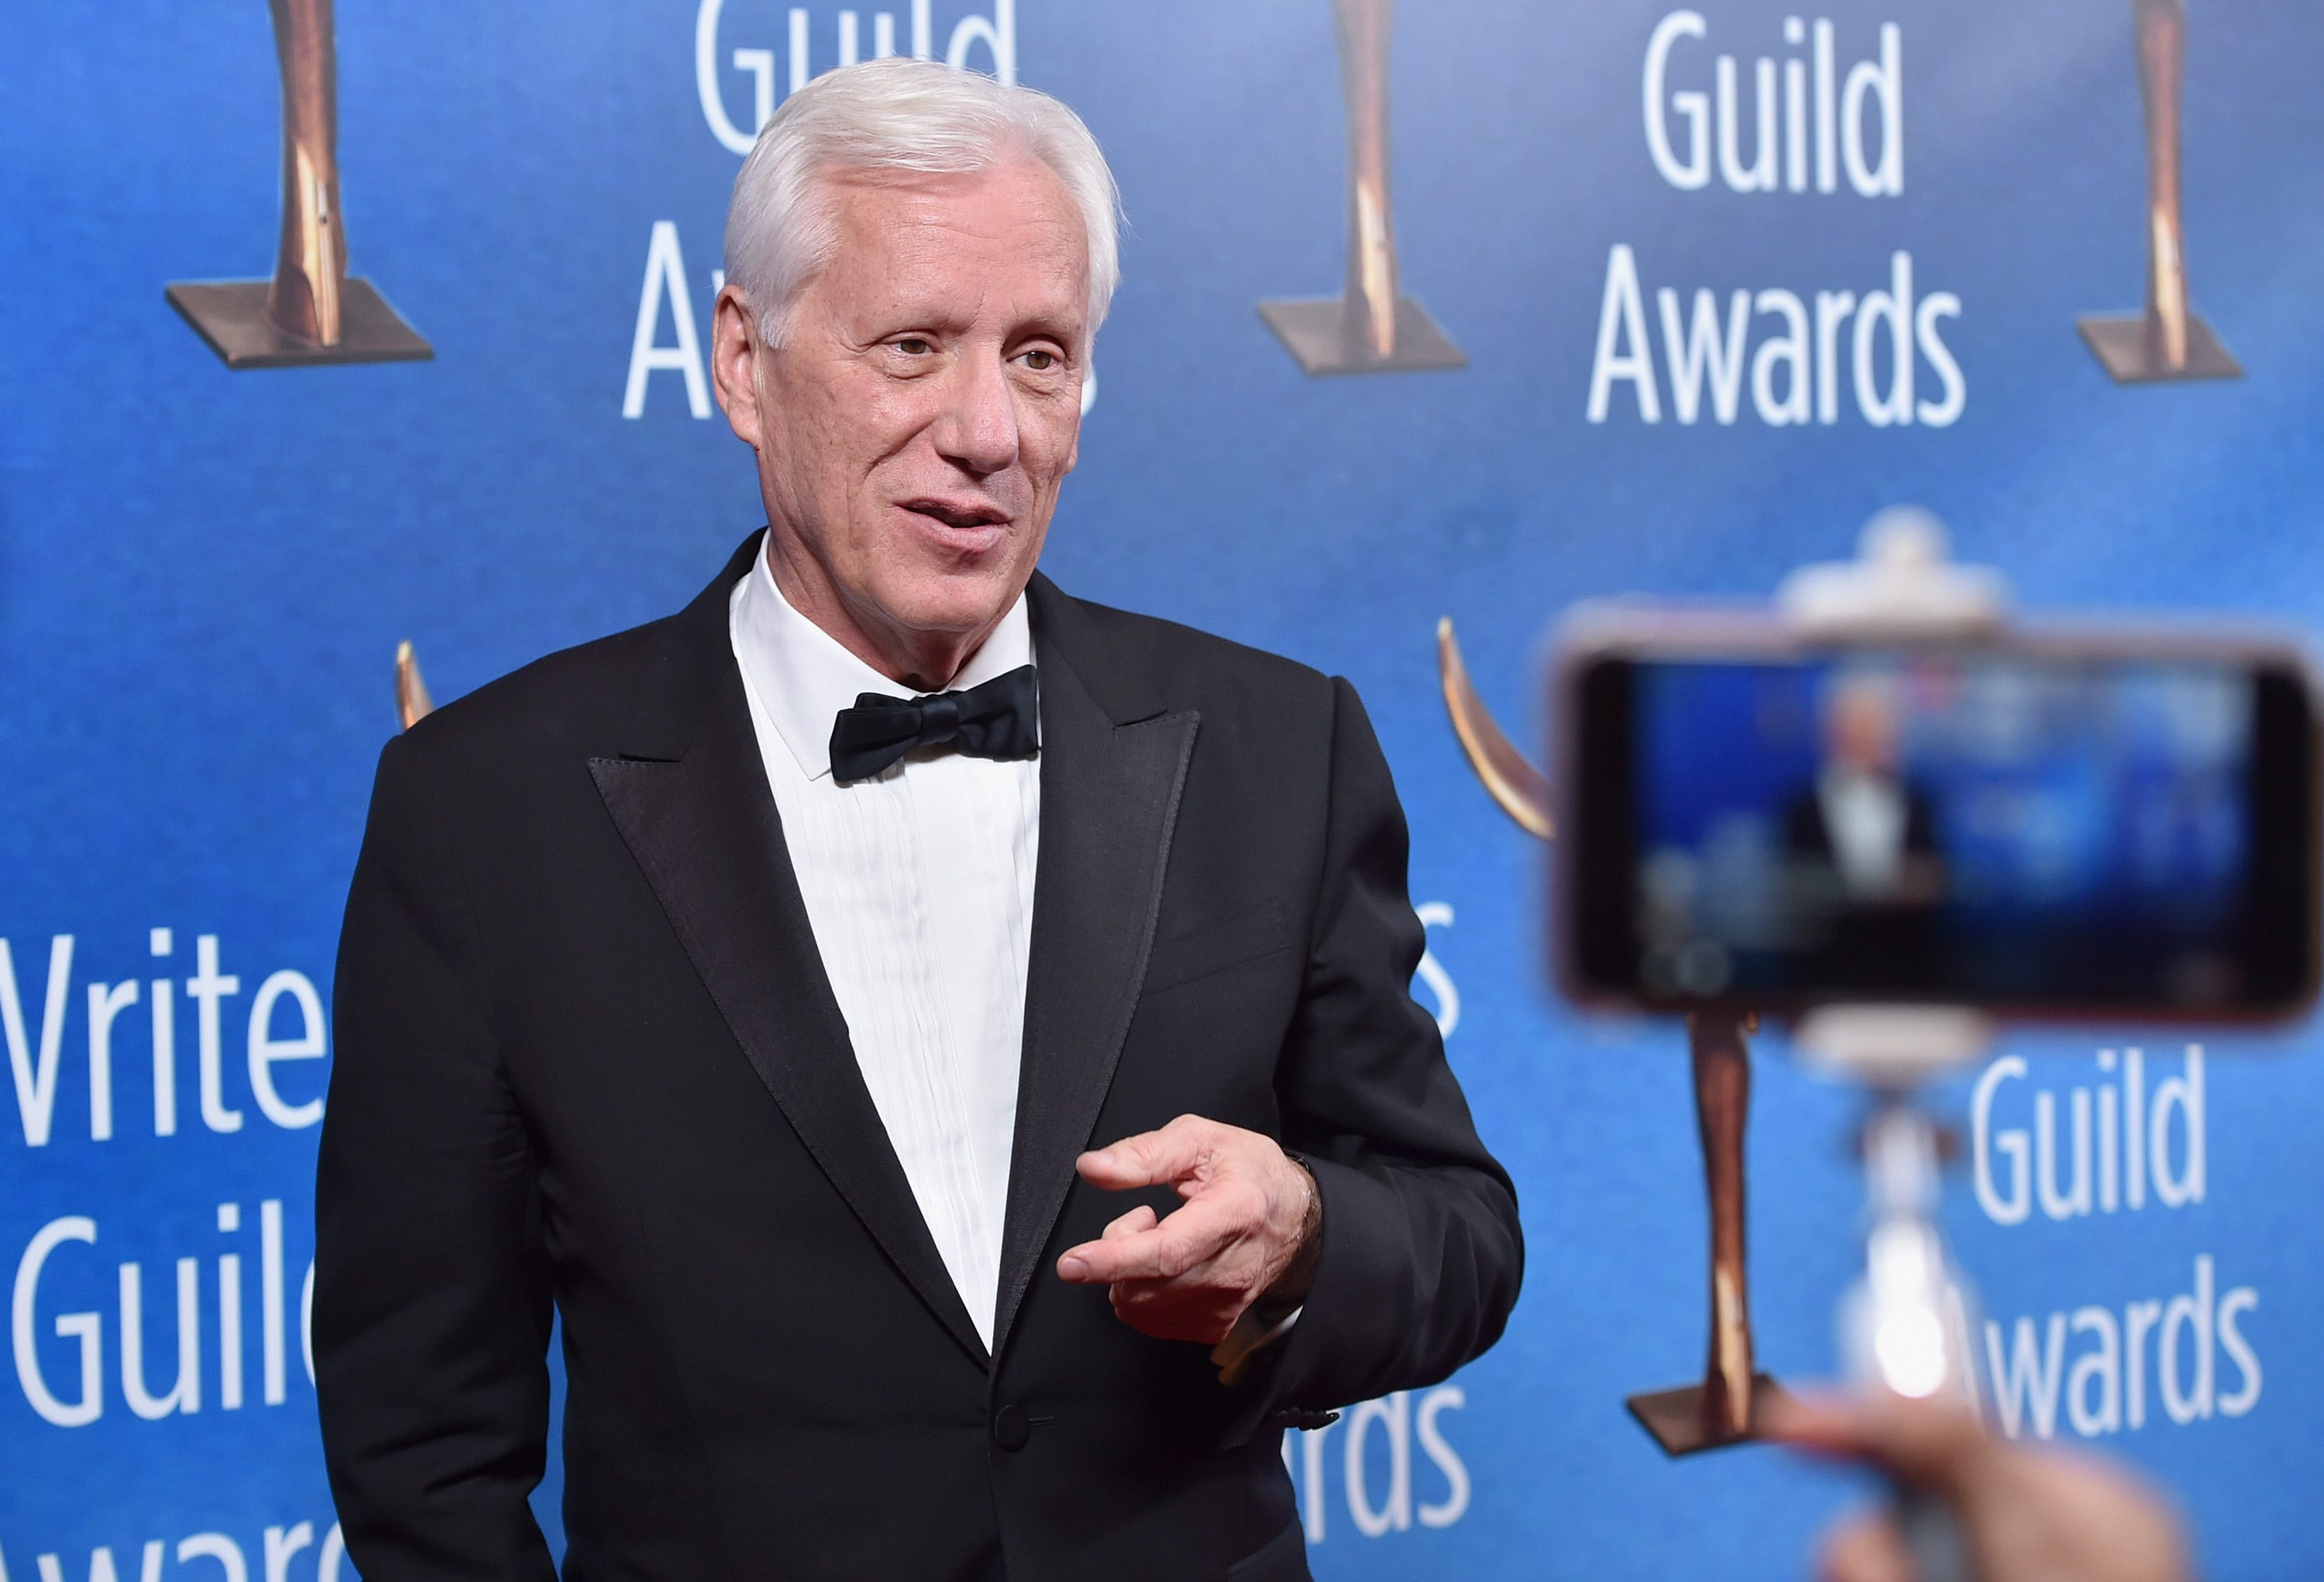 James Woods uses Twitter to help veteran contemplating suicide: 'You could save another'